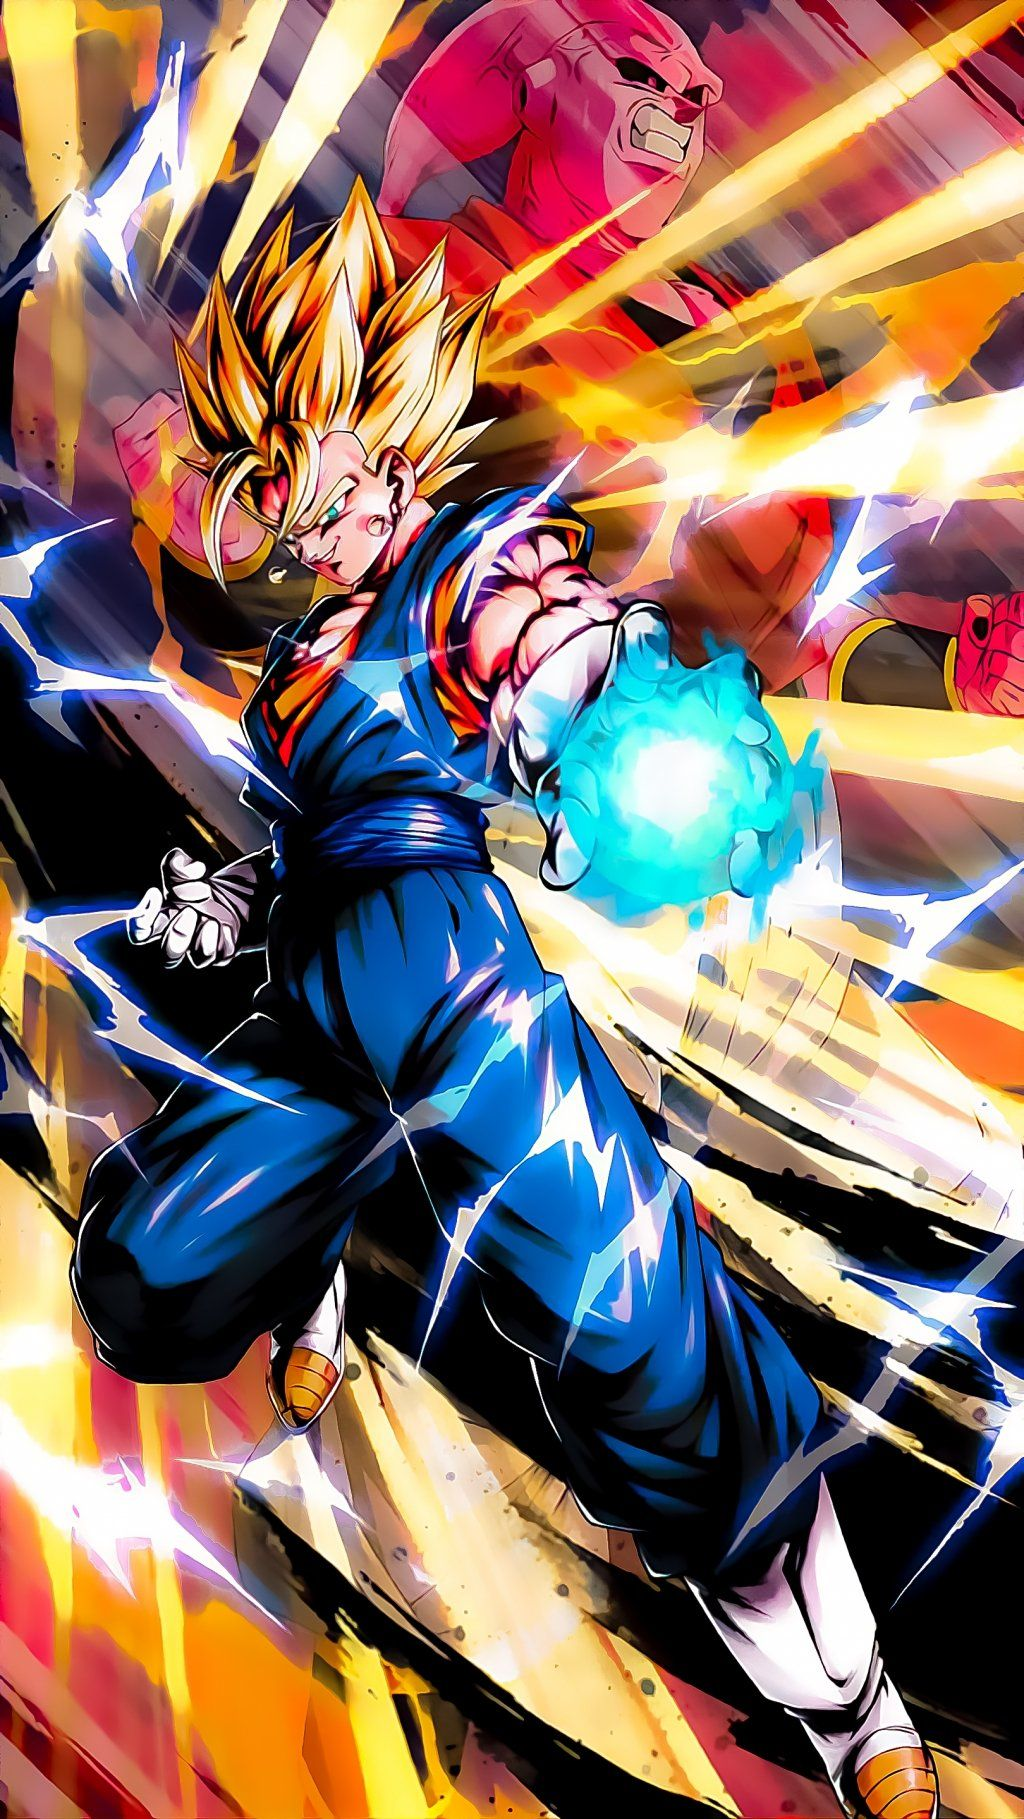 Top 8 Dbz Super Vegetto 4k Vertical Wallpapers In 2020 Dragon Ball Painting Dragon Ball Art Dragon Ball Super